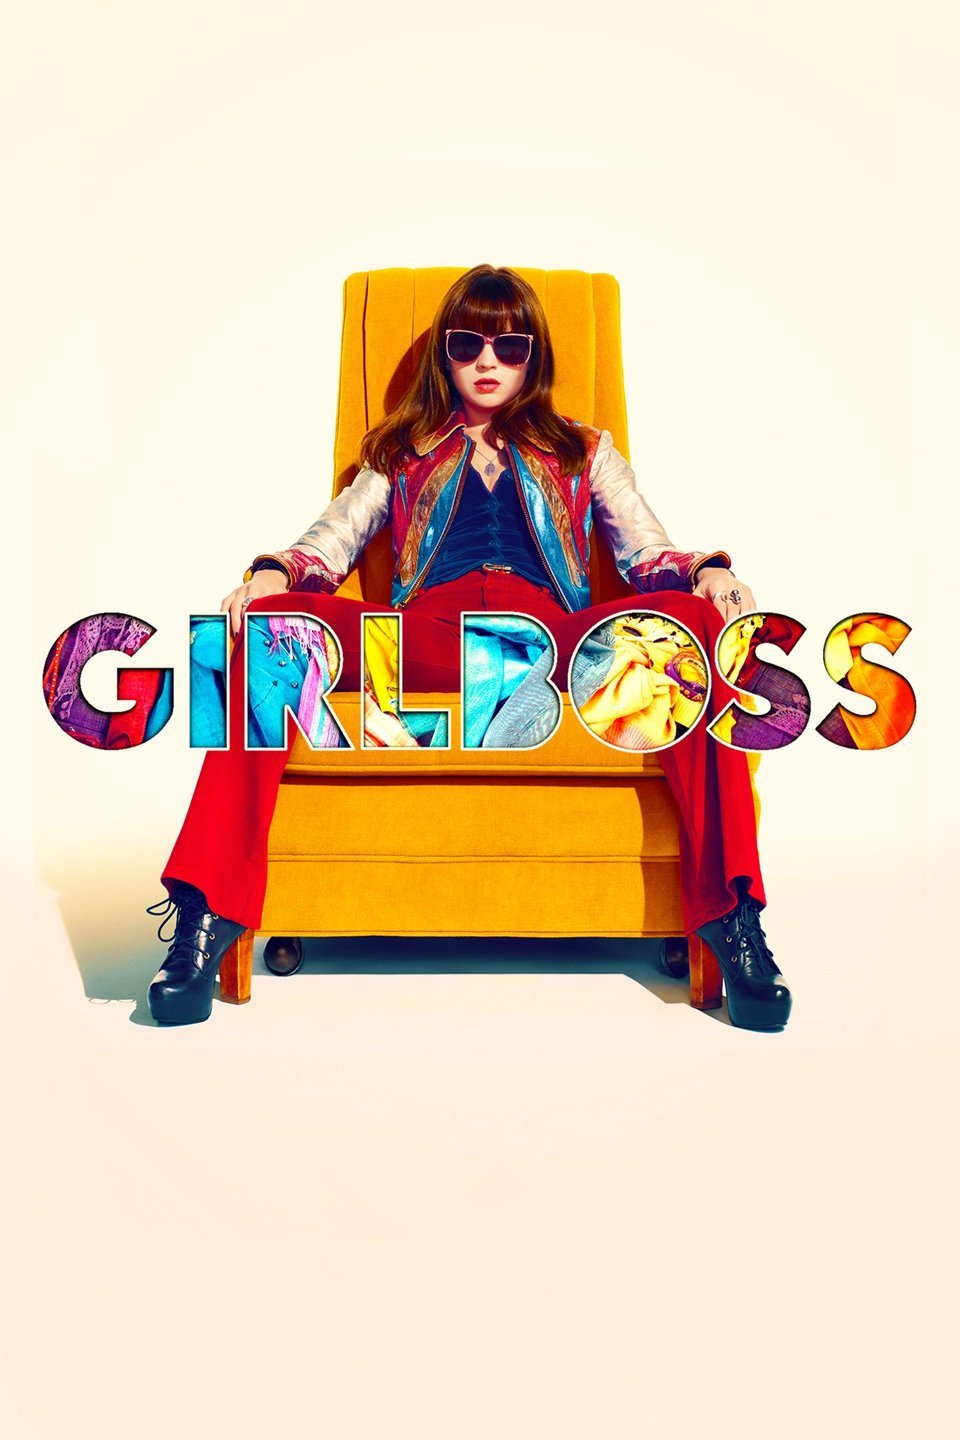 Girlboss Season 1 Episode 4 Download 480p WEB-DL 100MB